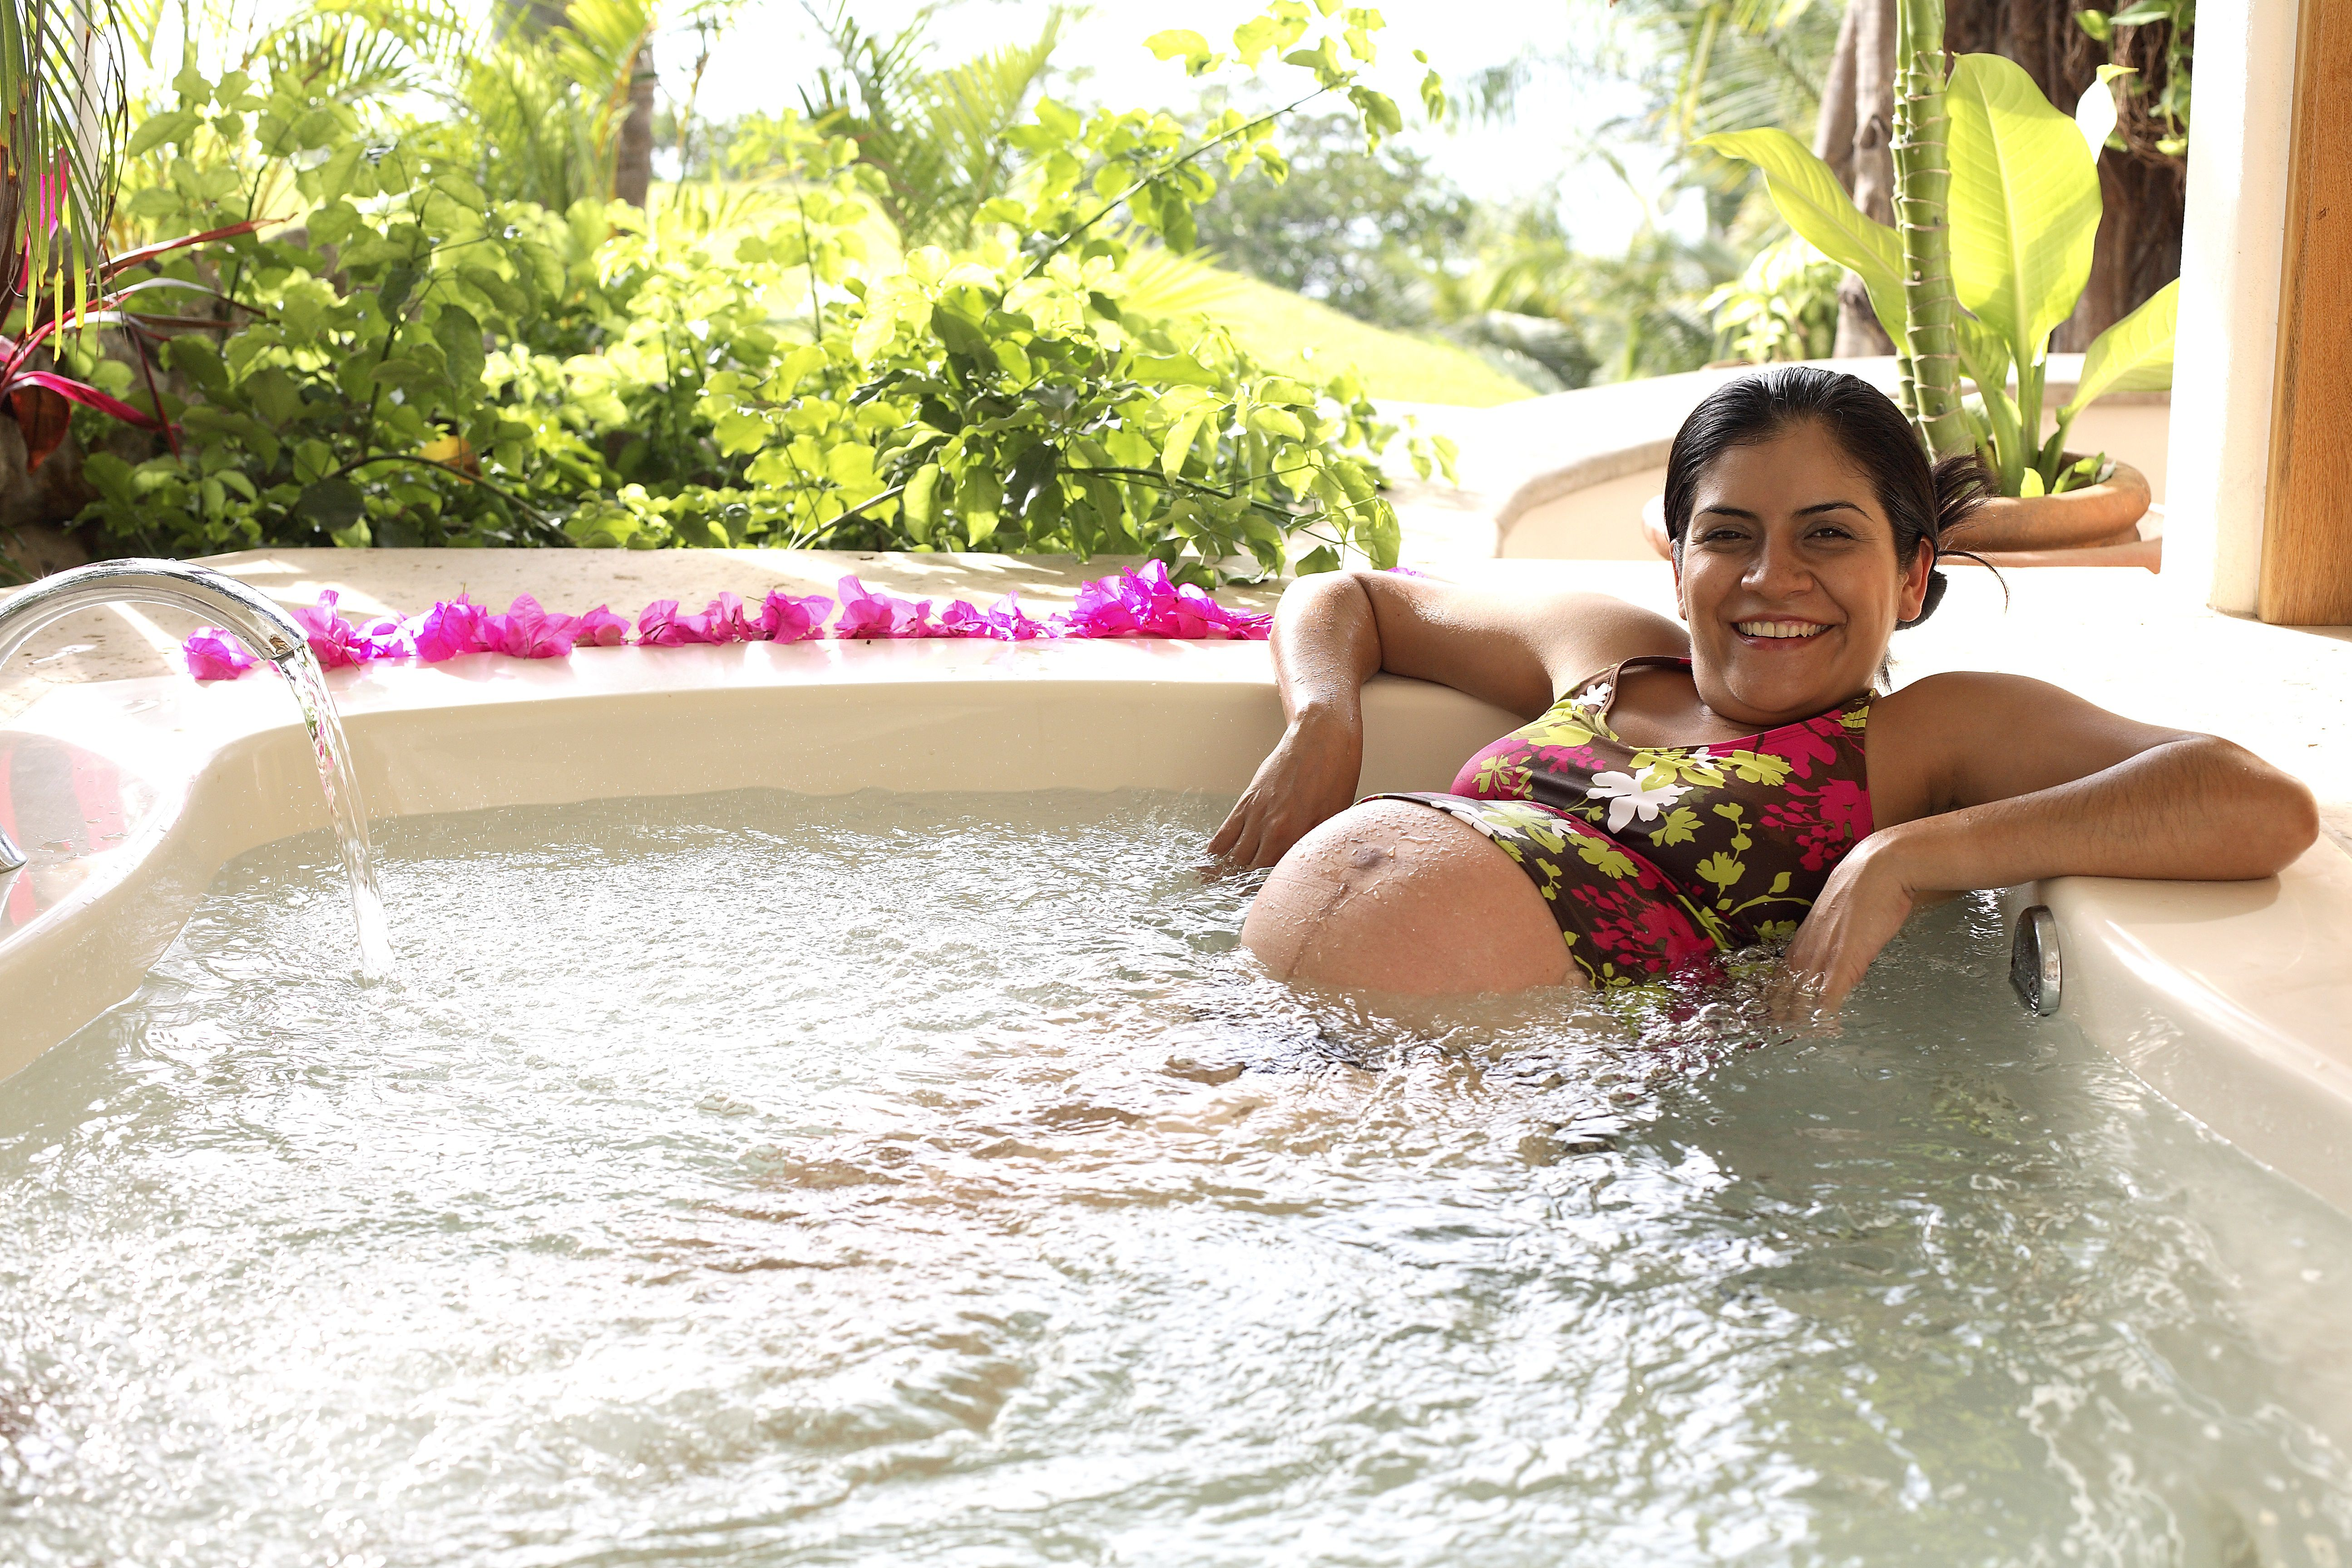 Pregnant woman smiling in hot tub